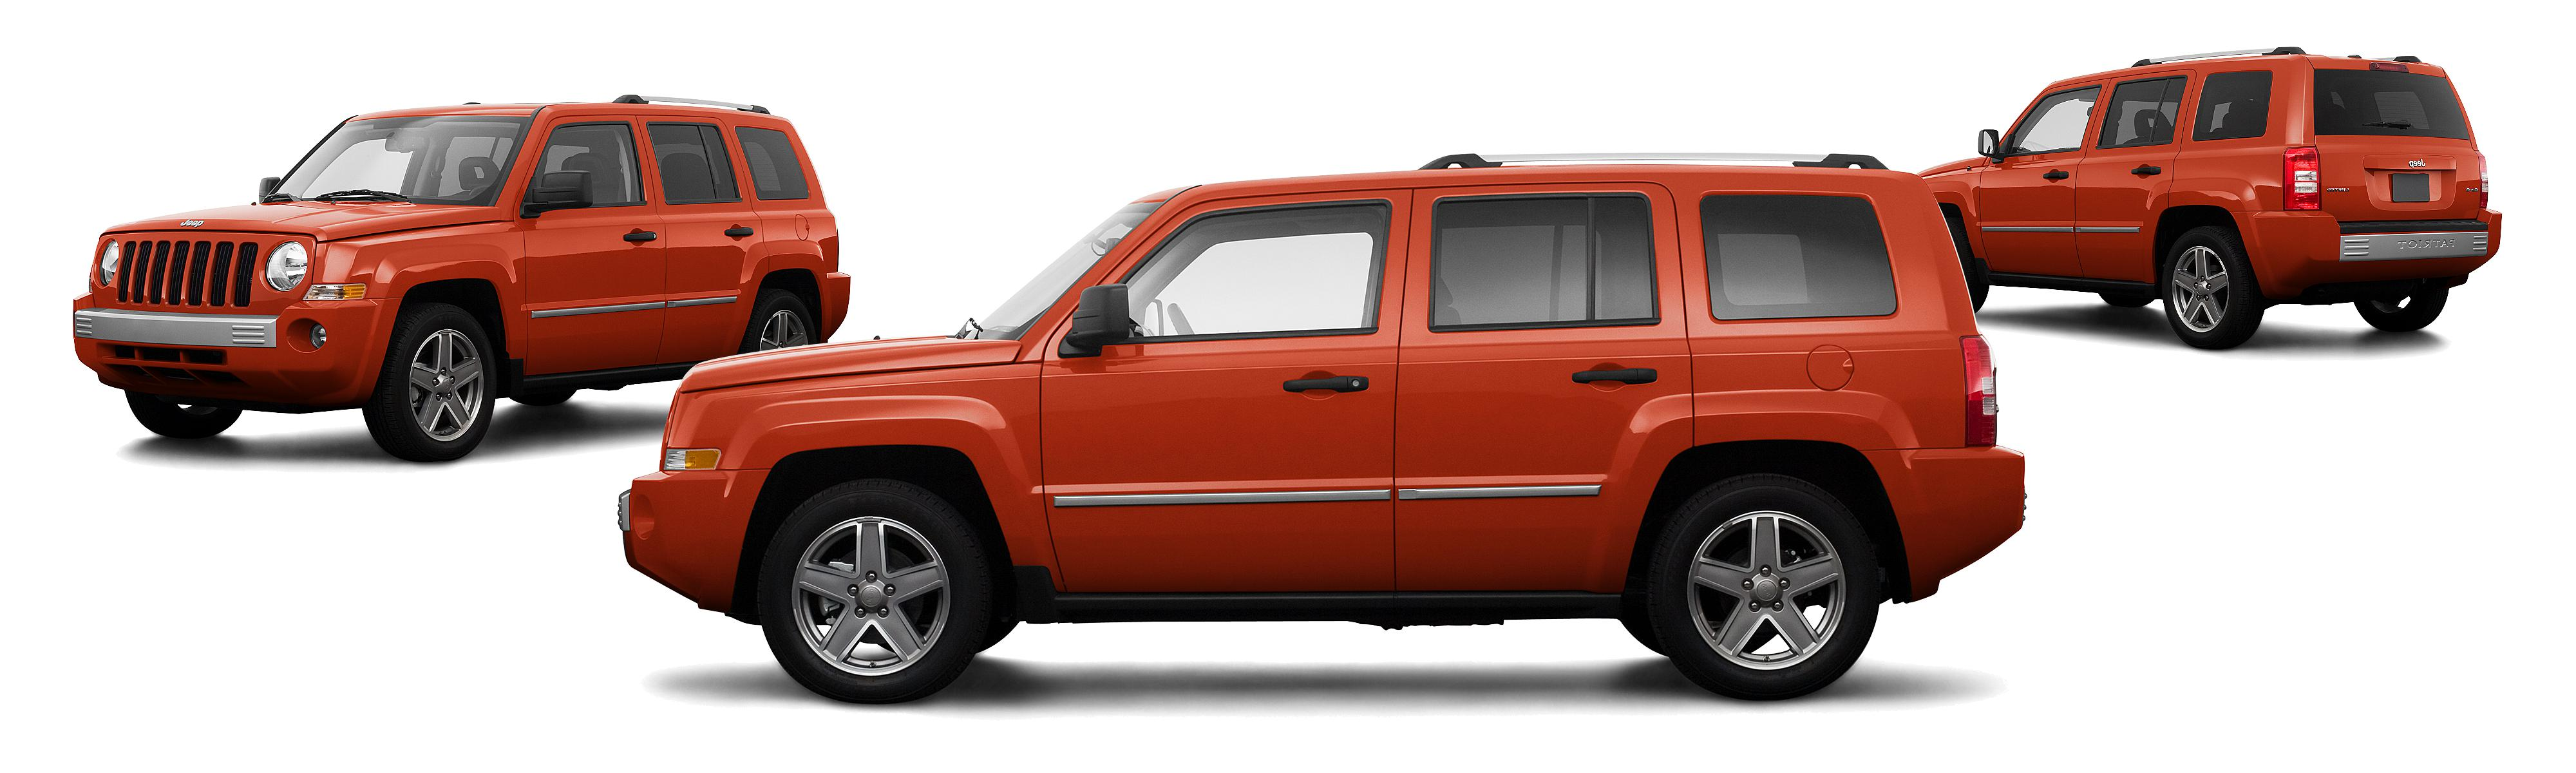 2008 Jeep Patriot Limited 4dr Suv Research Groovecar